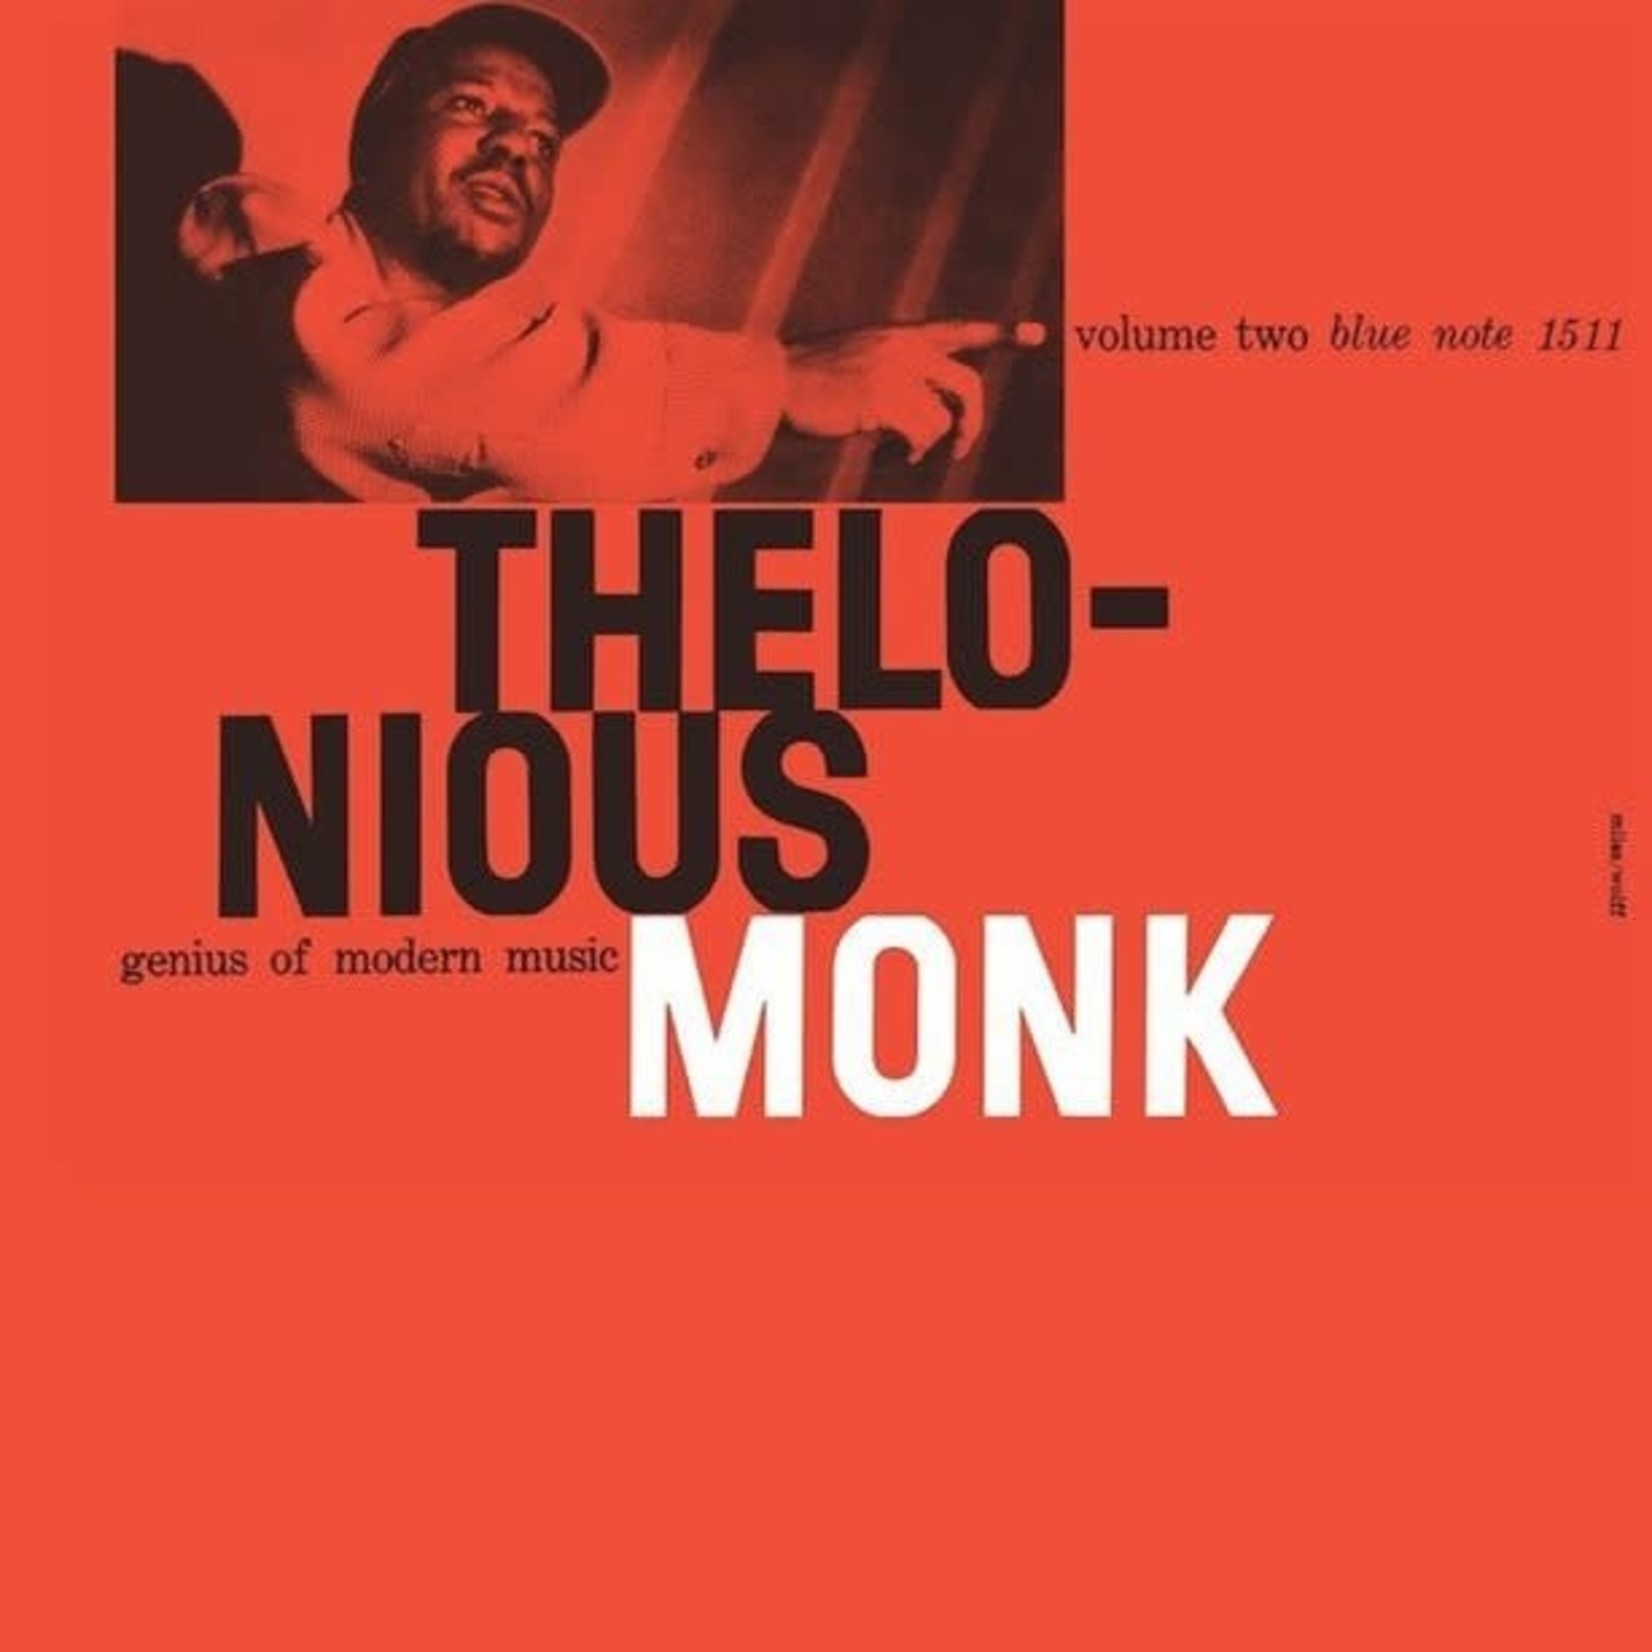 [New] Monk, Thelonious: Genius Of Modern Music Volume Two (Blue Note 75th Anniversary Series)